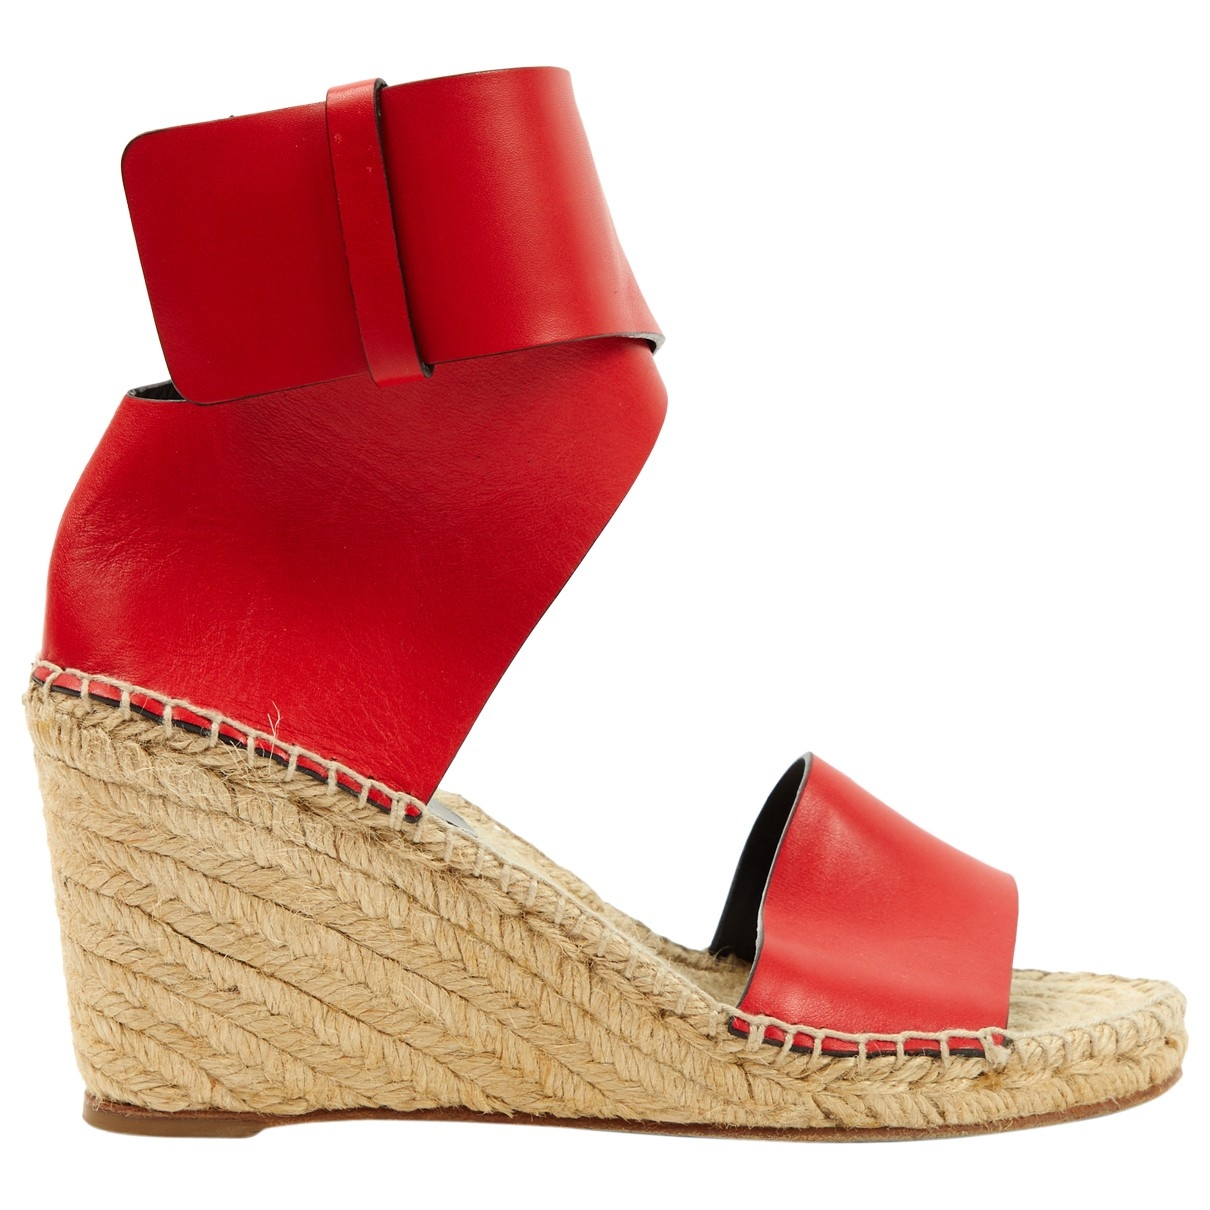 Celine \N Red Leather Sandals for Women 37 EU